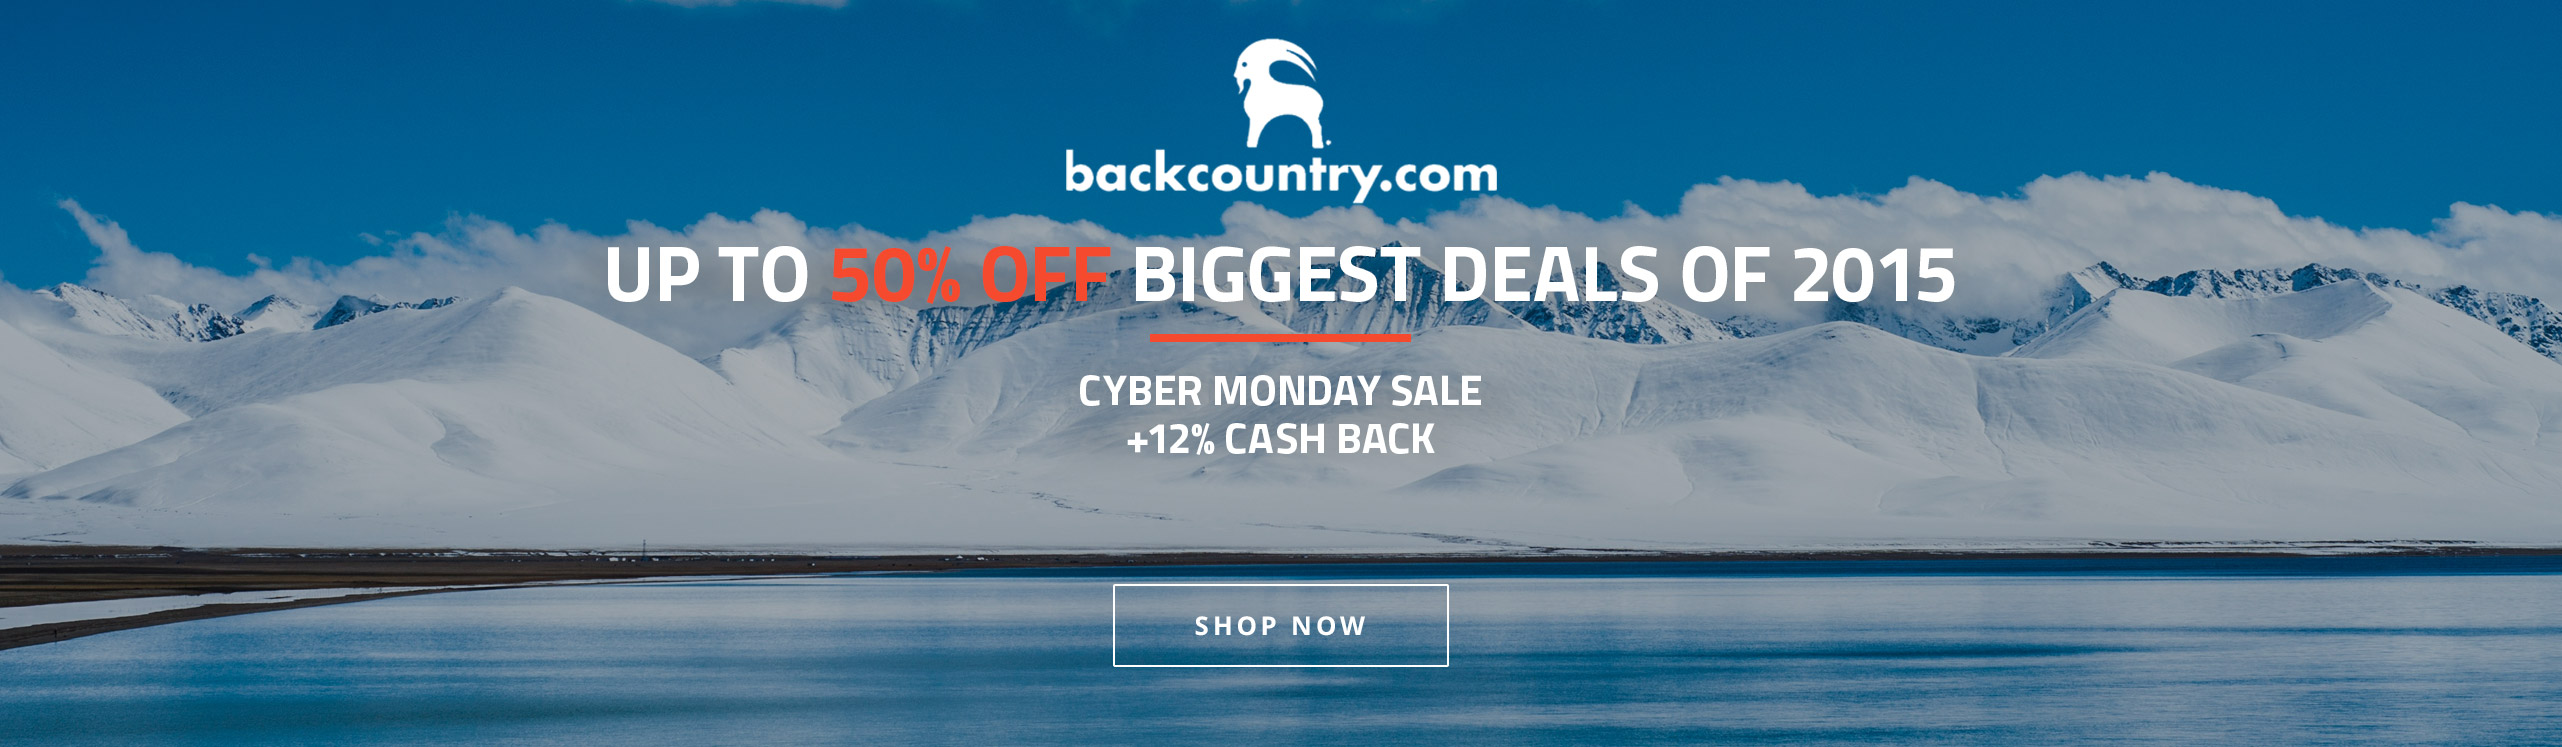 Backcountry Cyber Monday